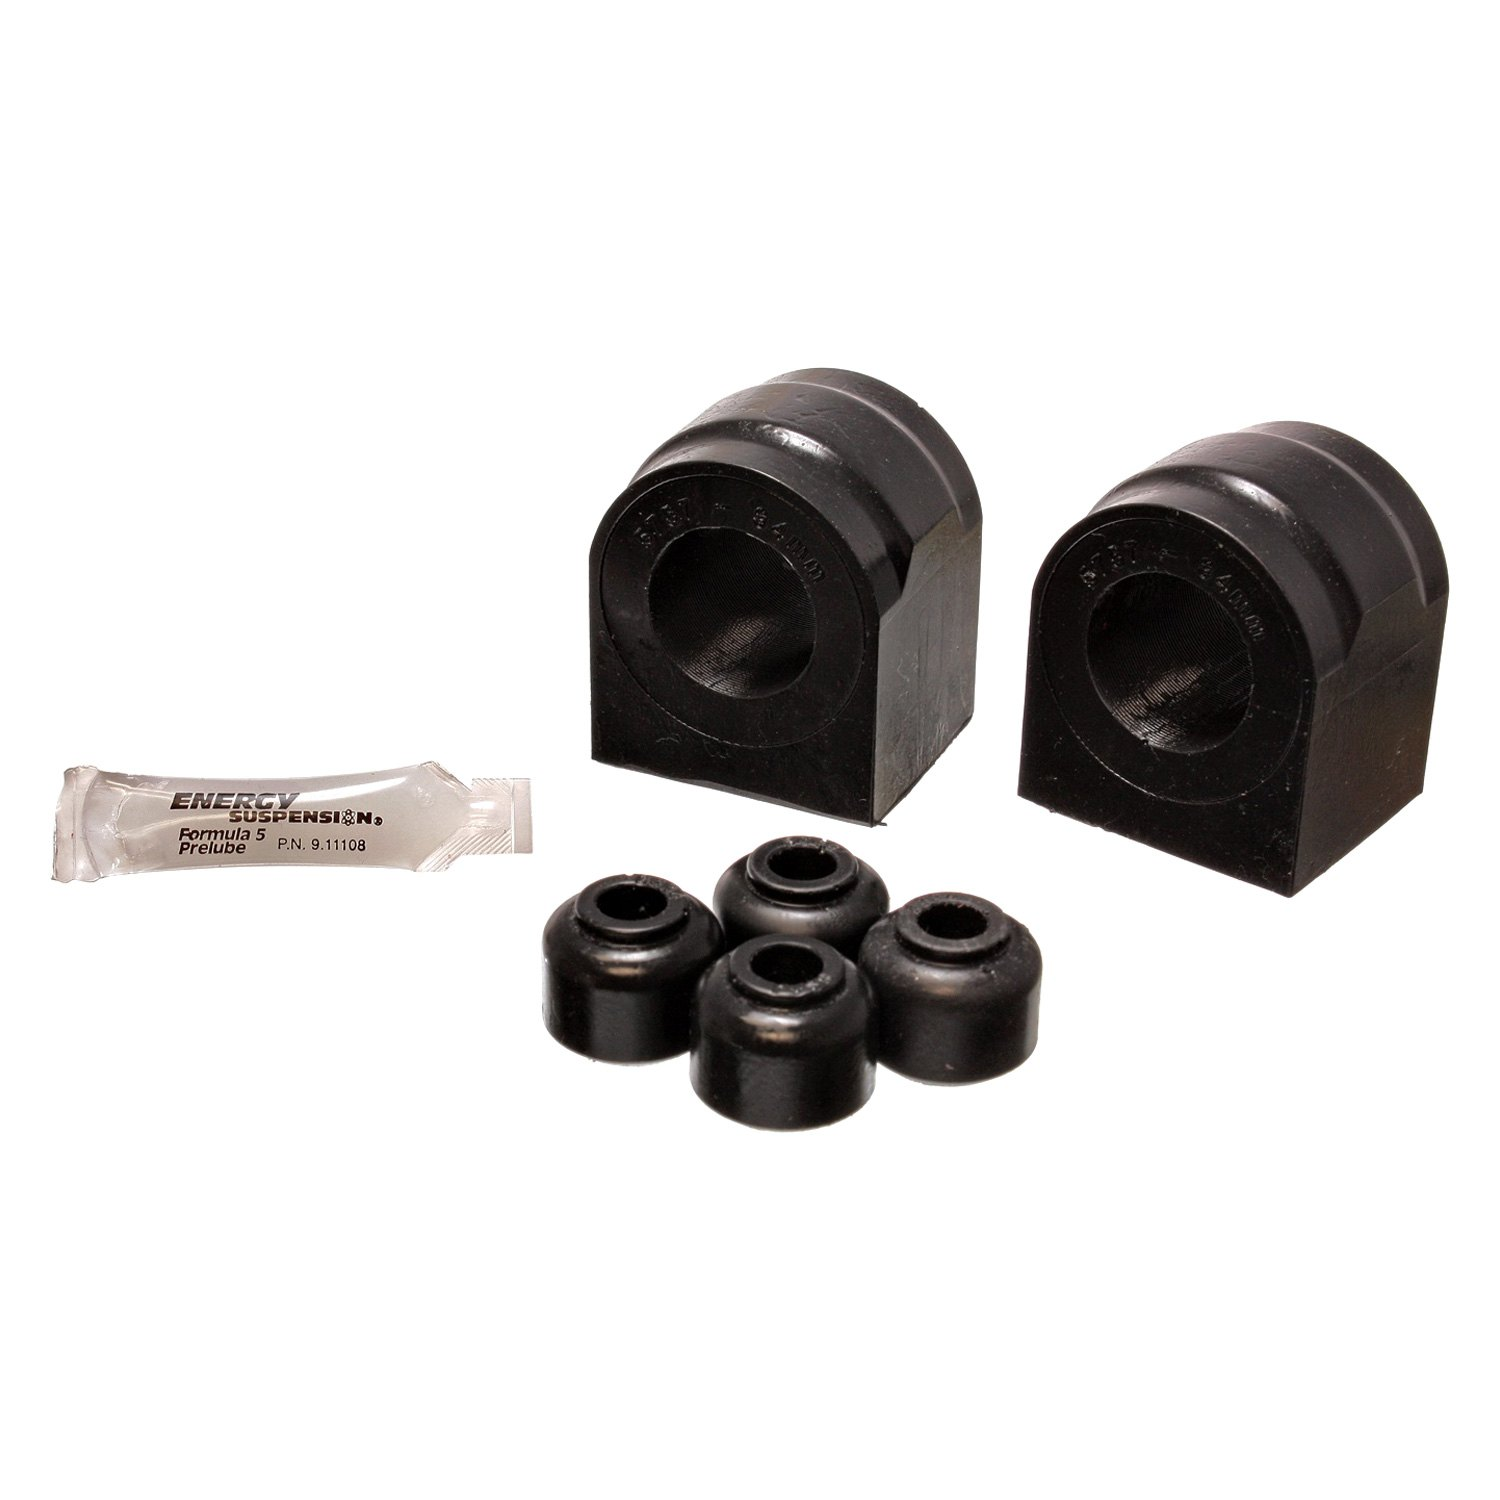 Energy Suspension 174 Ford F 150 2004 Sway Bar Bushings